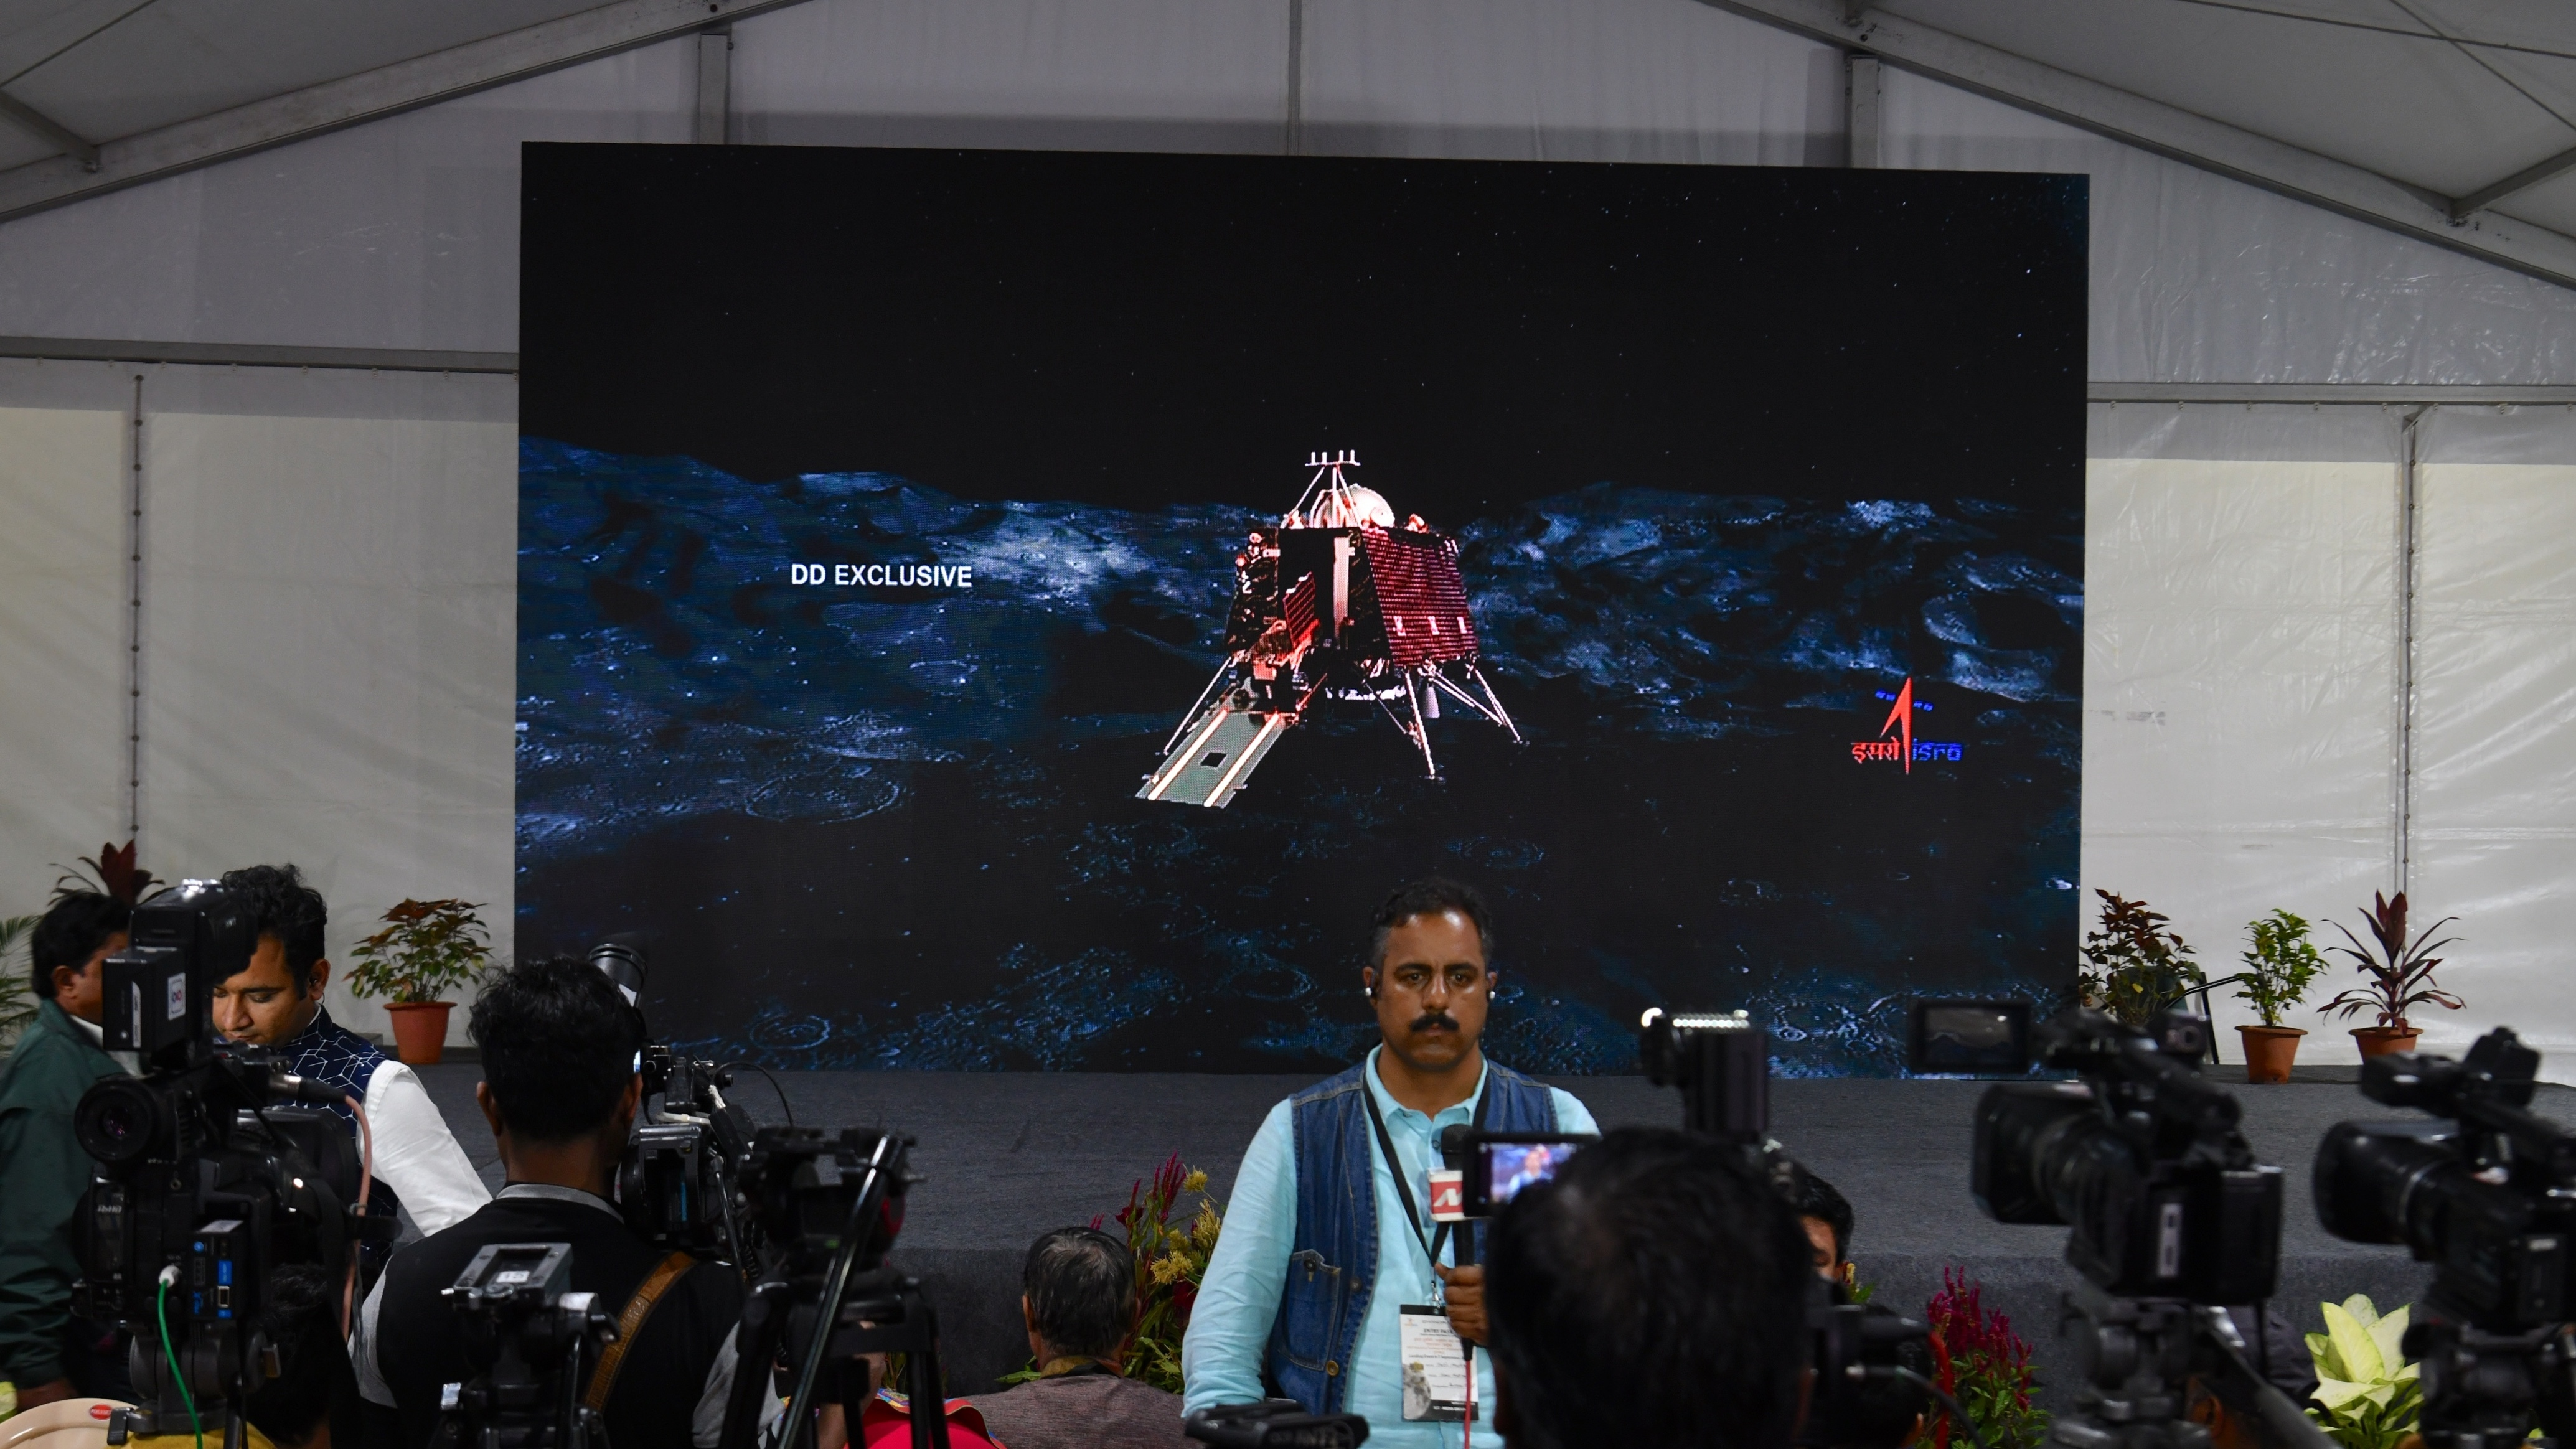 2 Months After Failed Moon Landing, India Acknowledges Its Craft Crashed